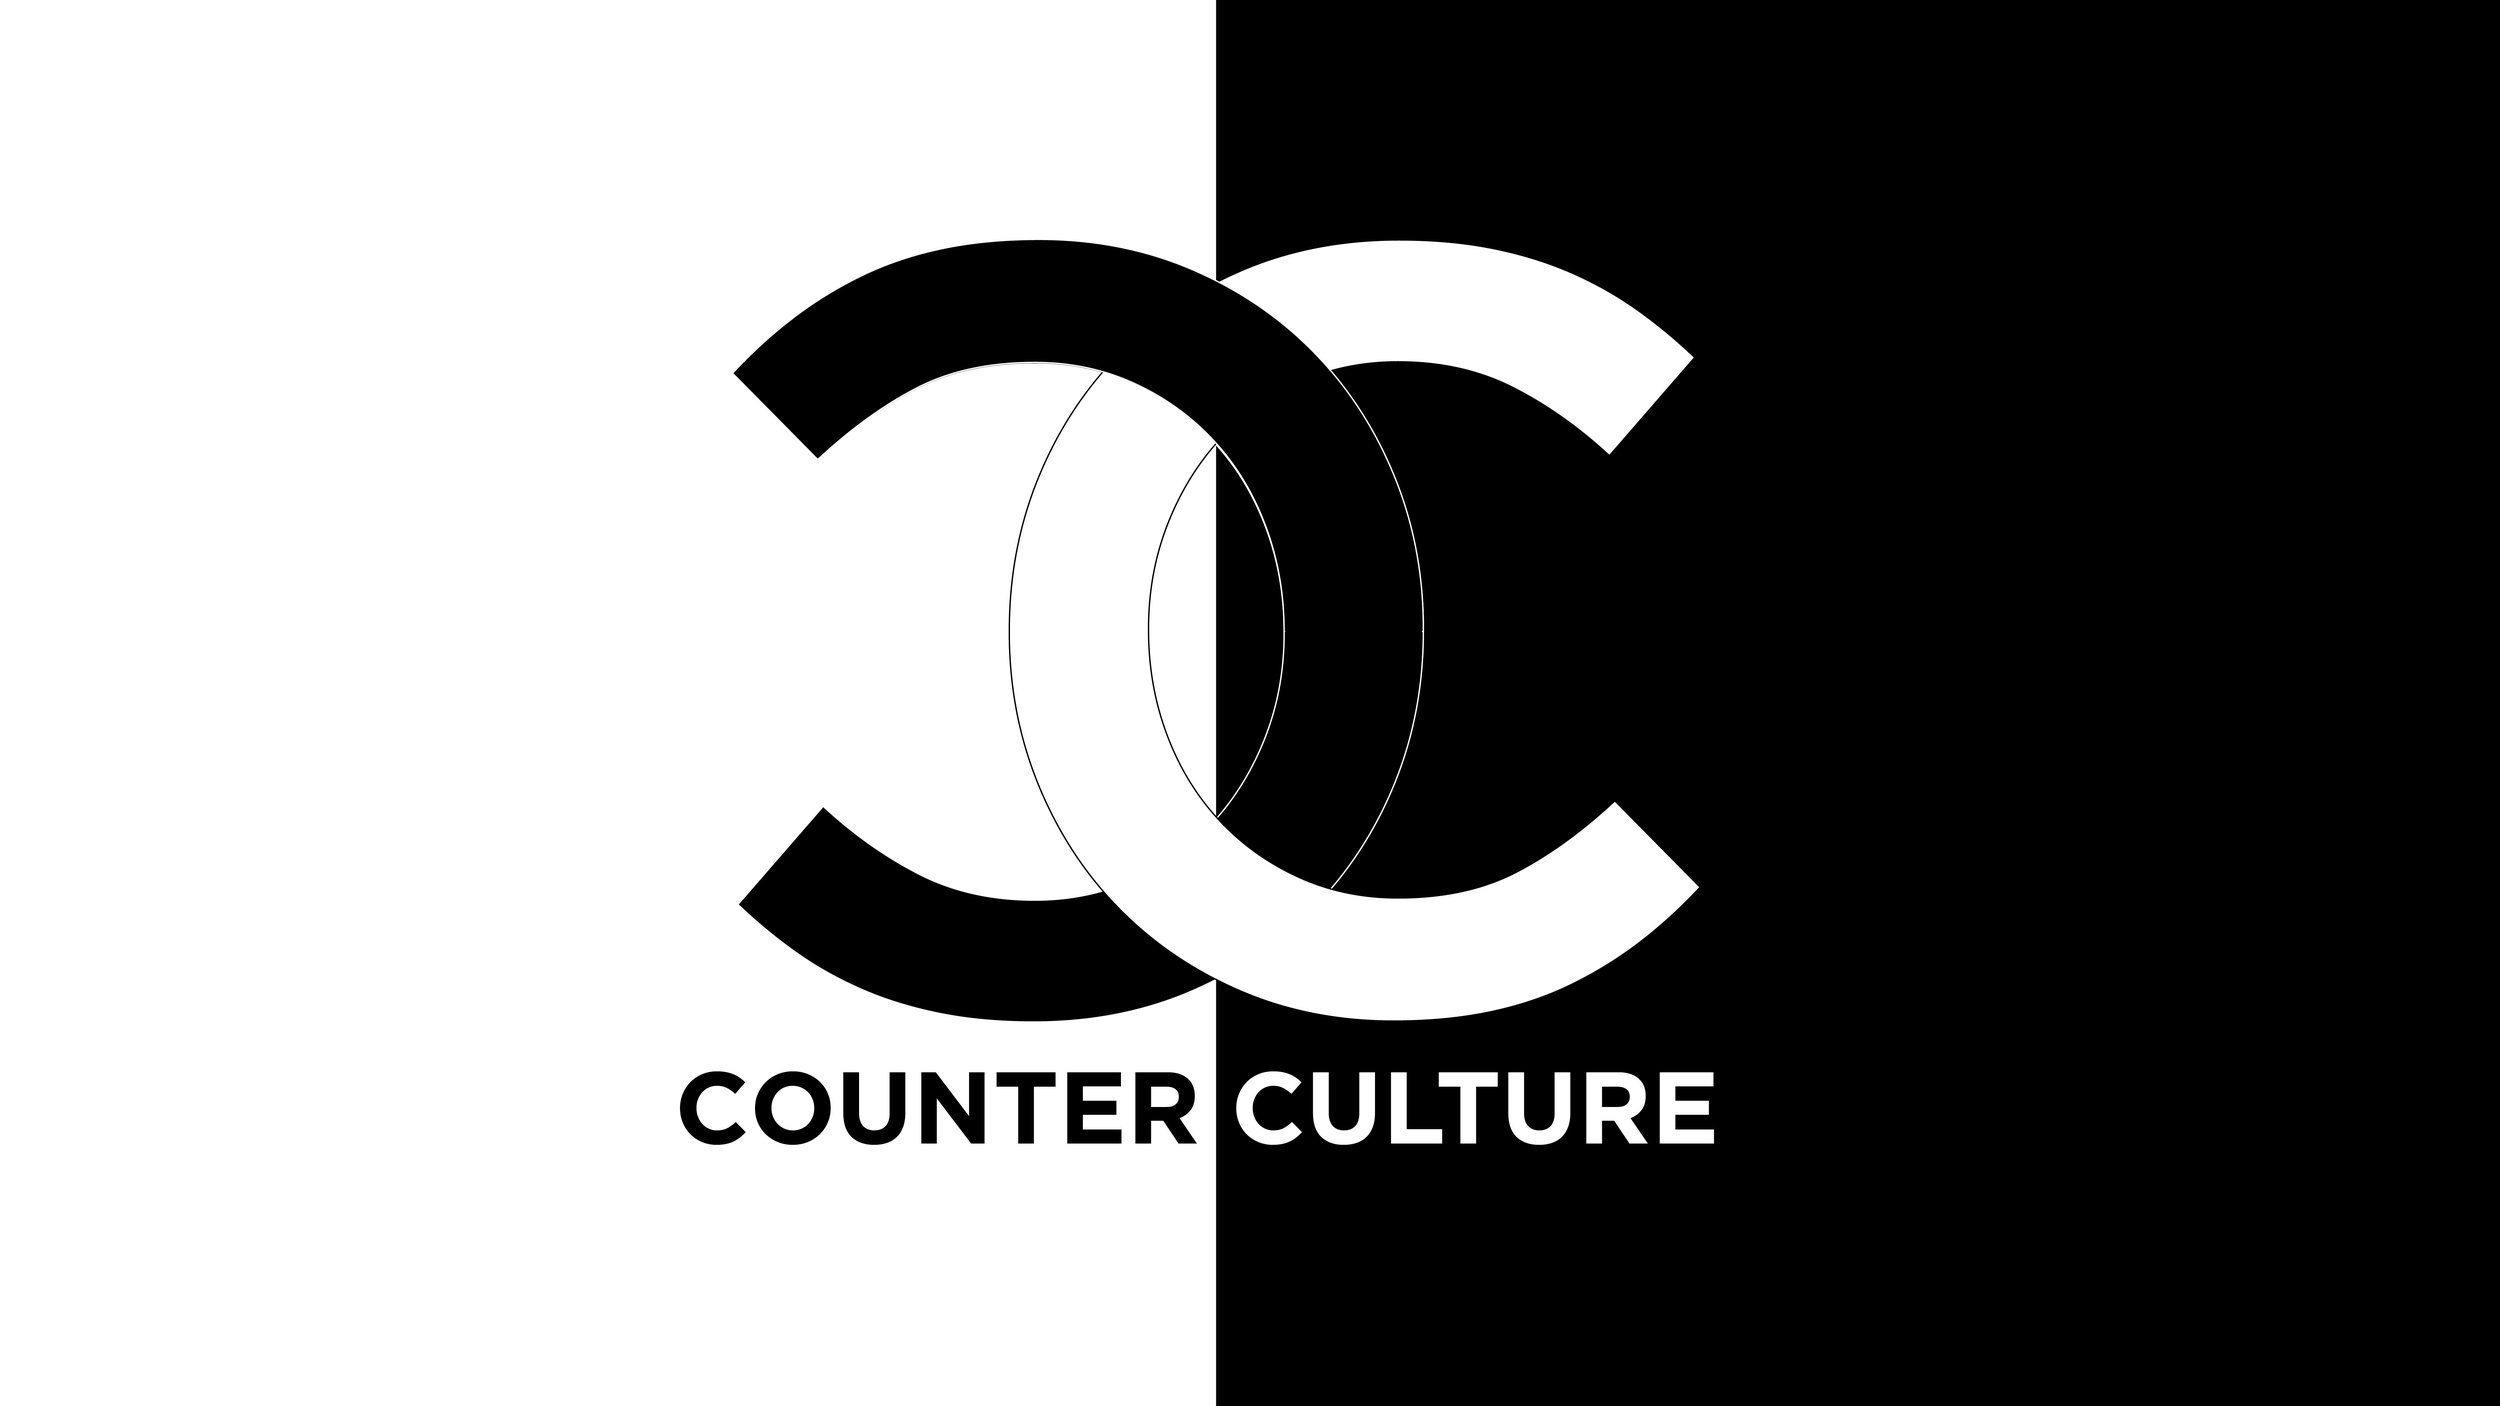 Counter_Culture-01.jpg